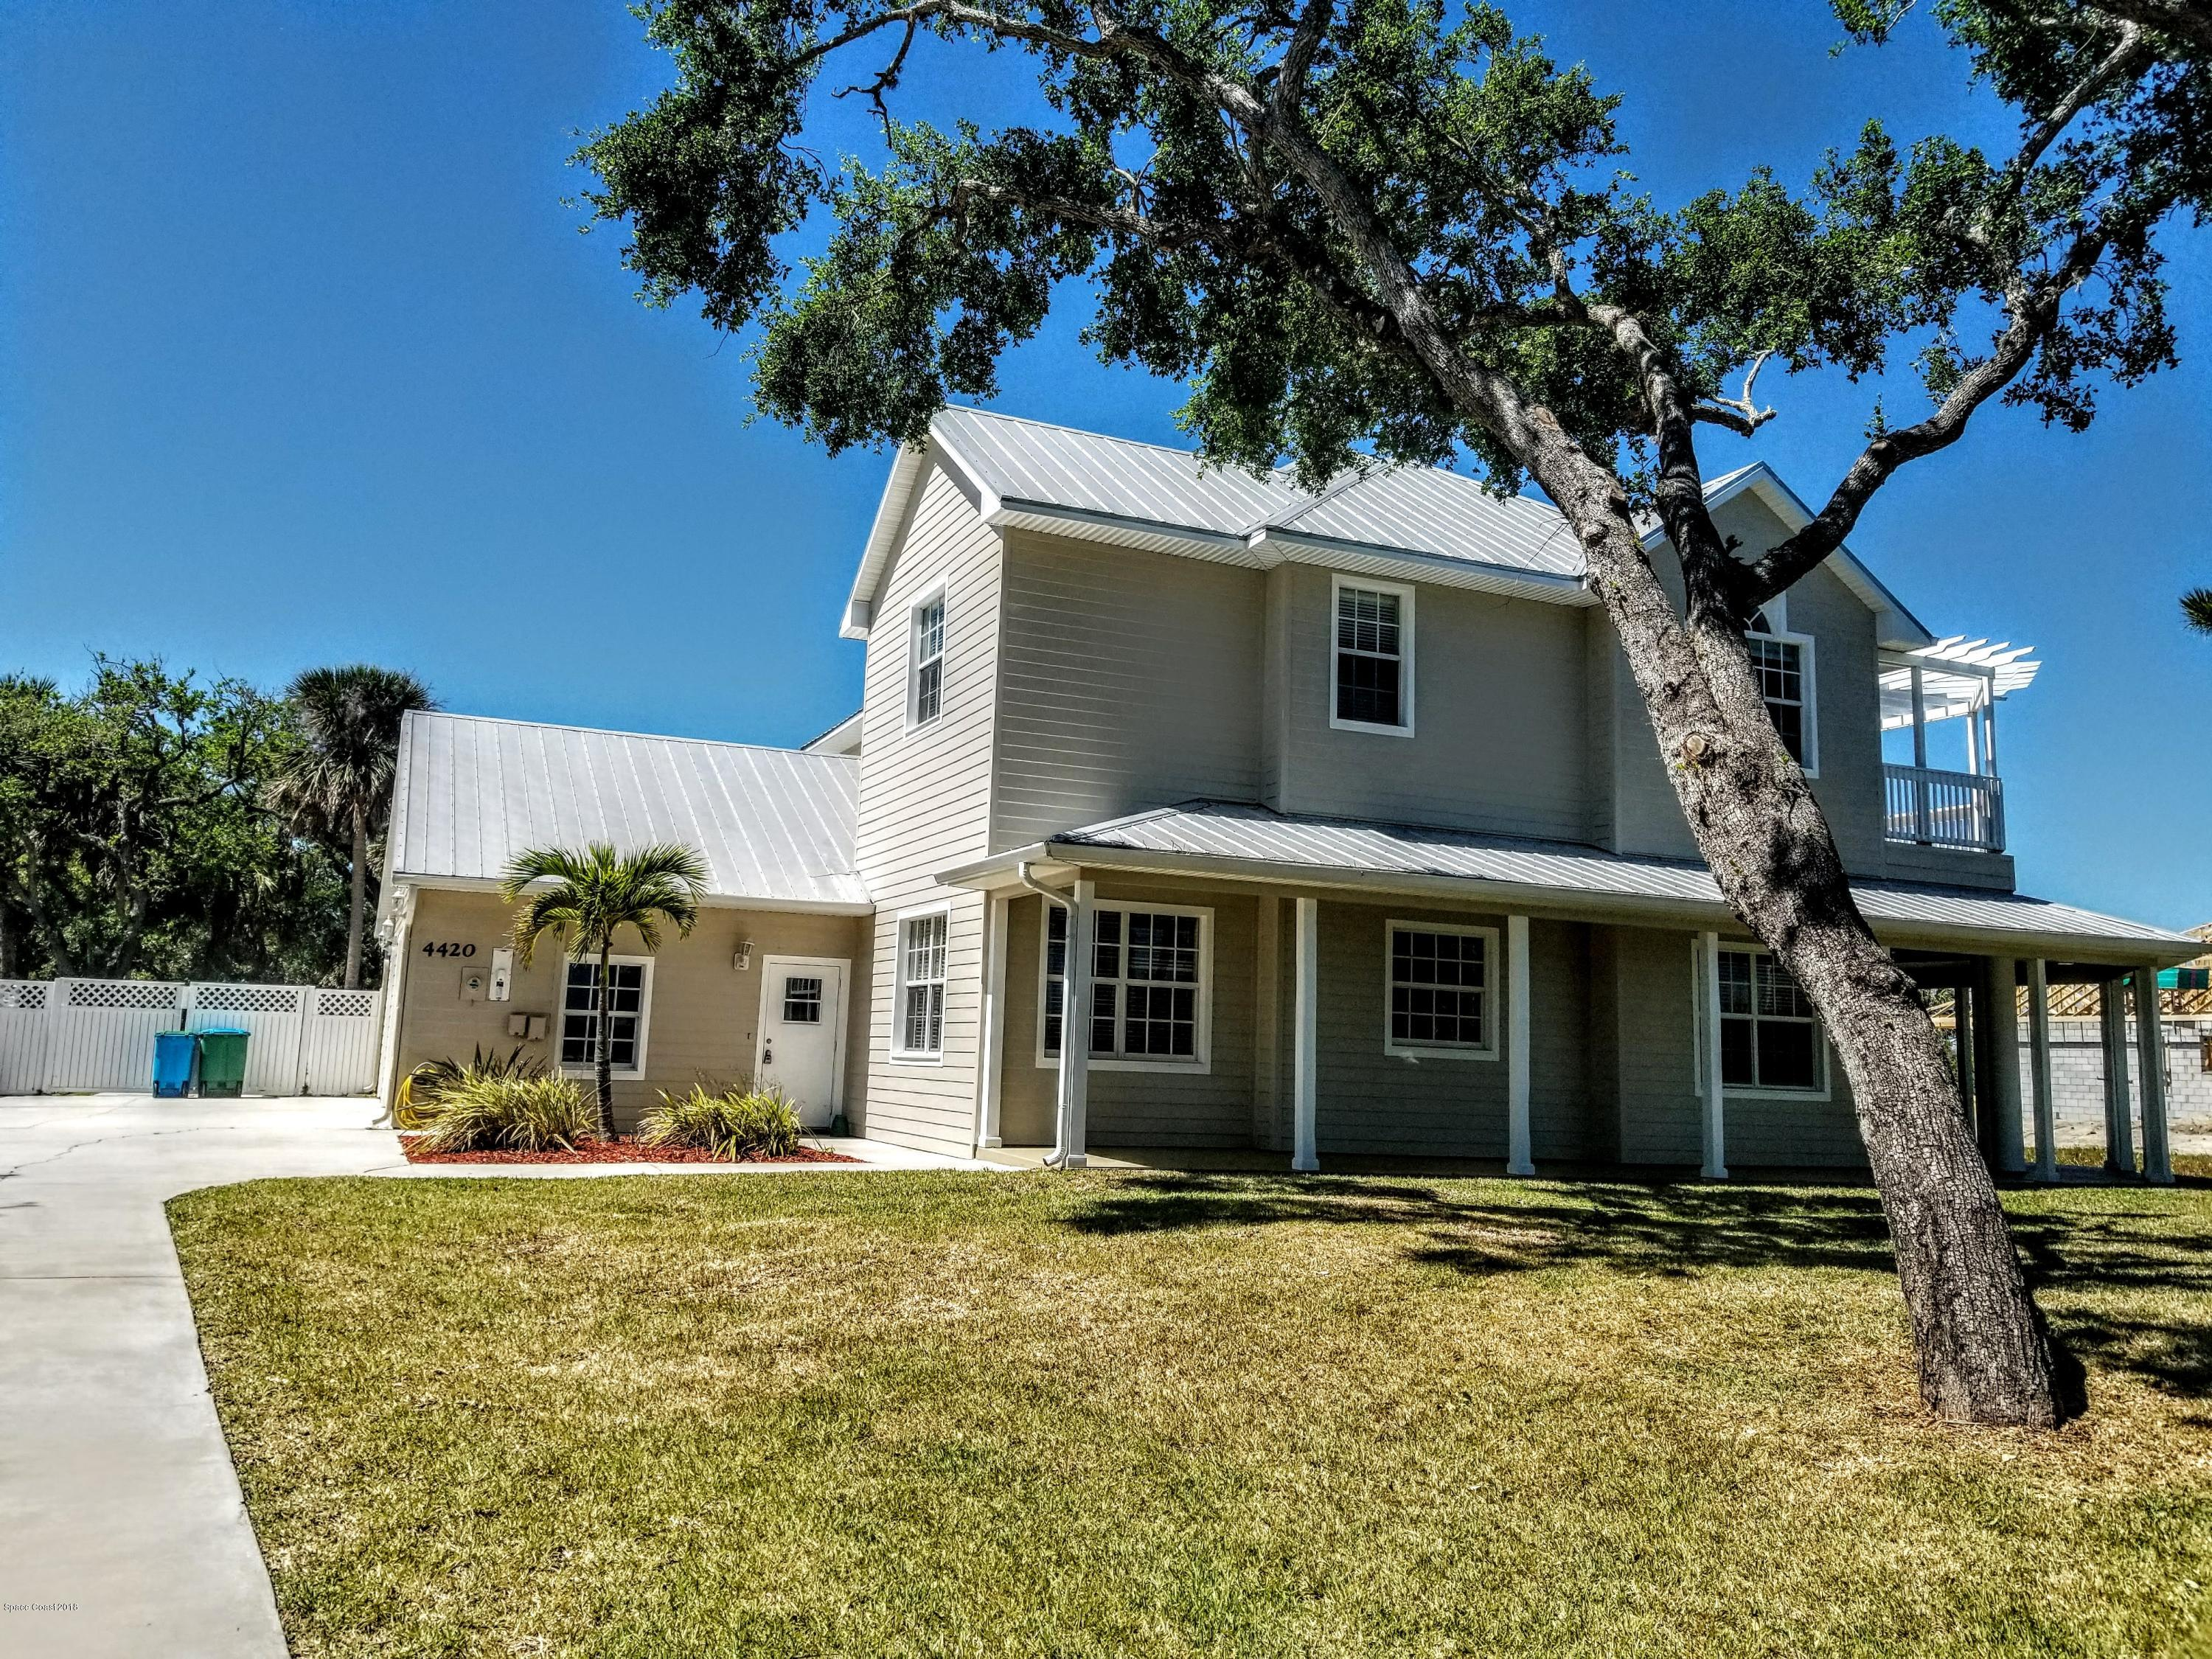 House for Sale at 4420 S Highway 1 4420 S Highway 1 Grant Valkaria, Florida 32949 United States